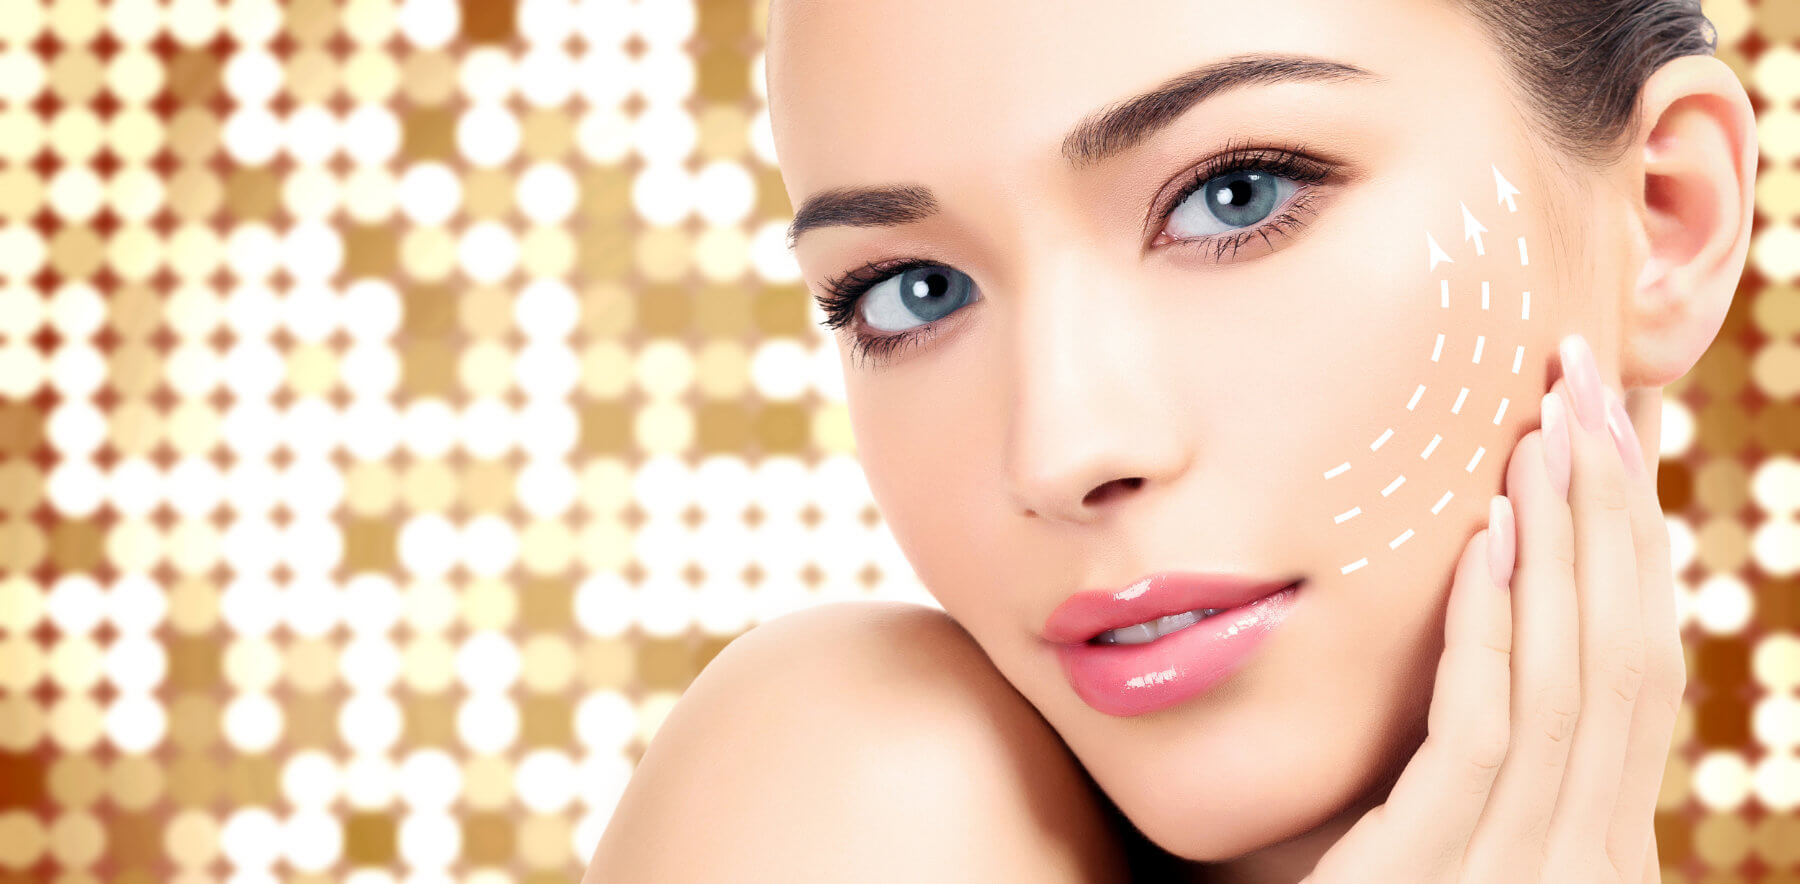 Injectables botox juvaderm restylane